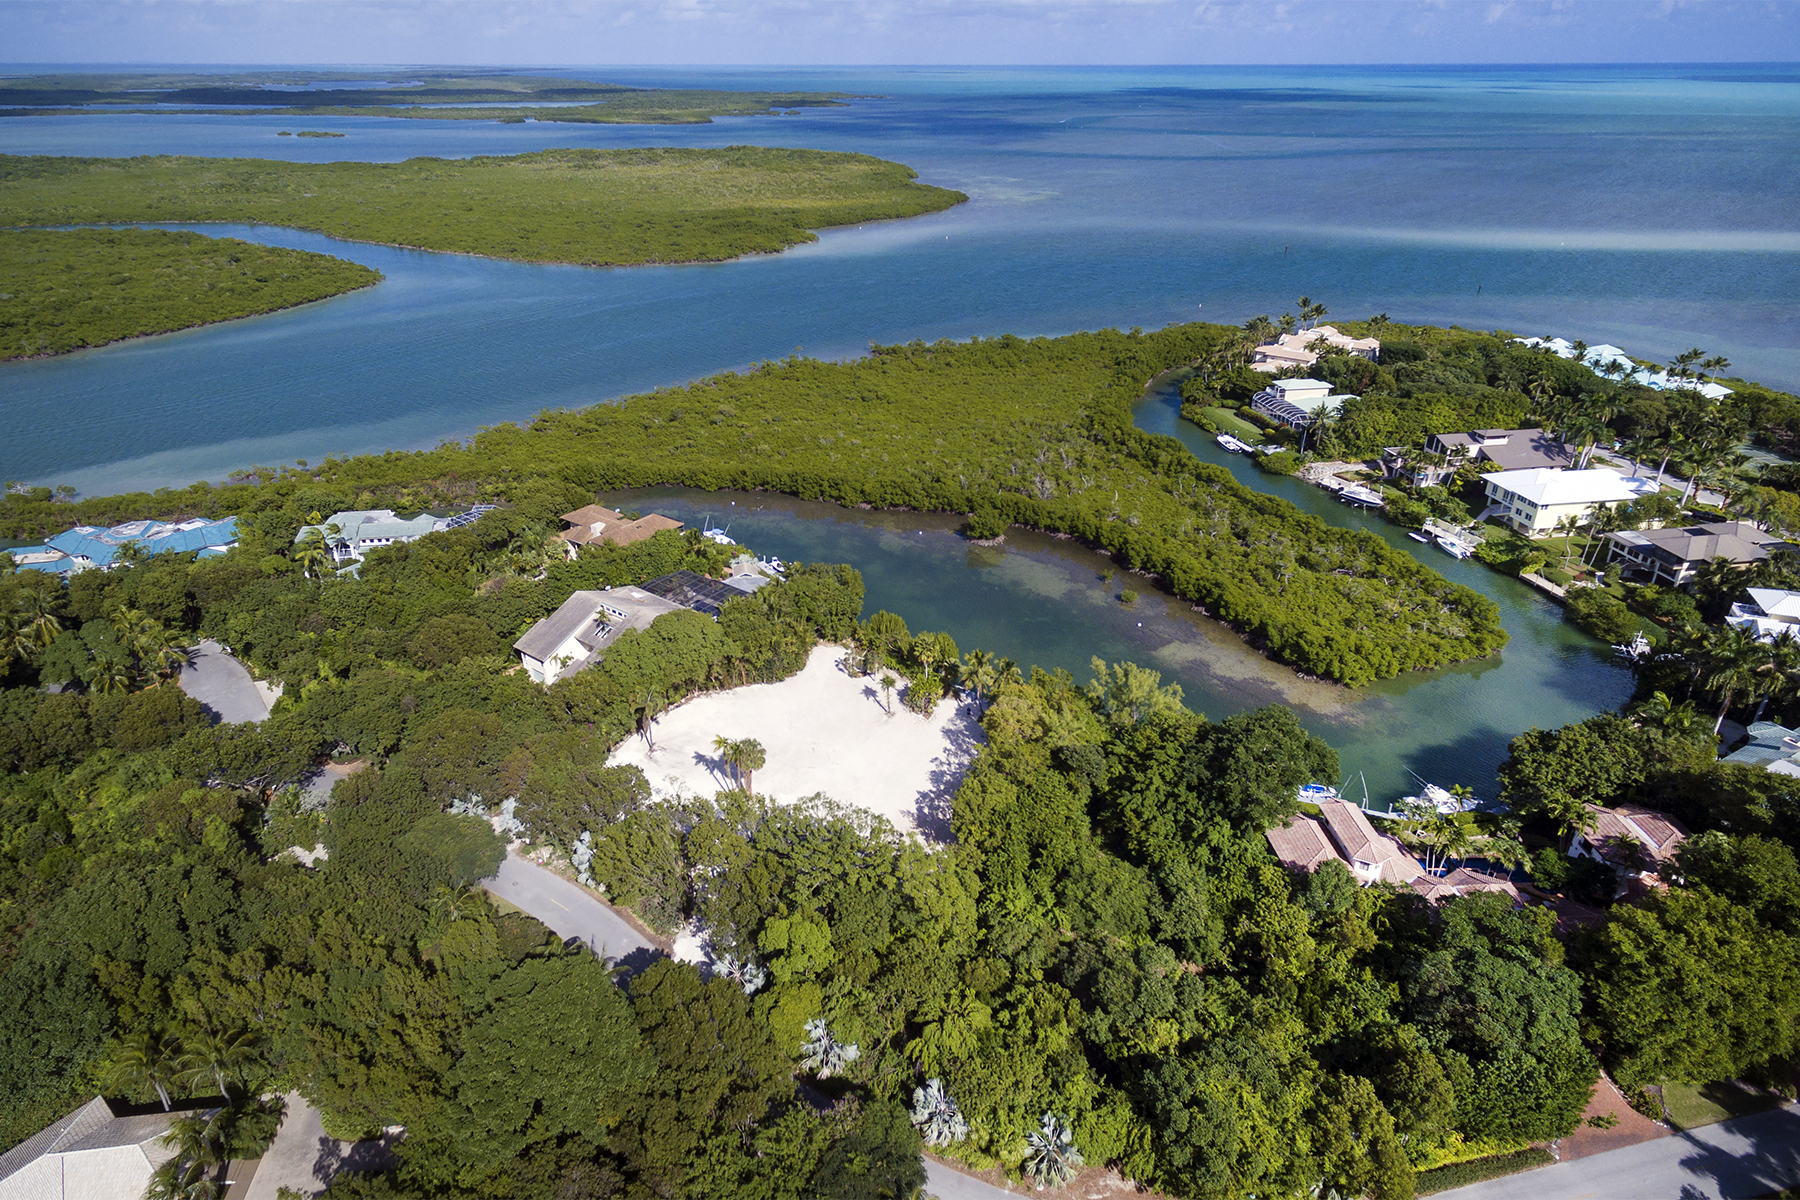 Land für Verkauf beim Expansive Location to Build Your Dream Home at Ocean Reef 40-42 Cardinal Lane Key Largo, Florida 33037 Vereinigte Staaten